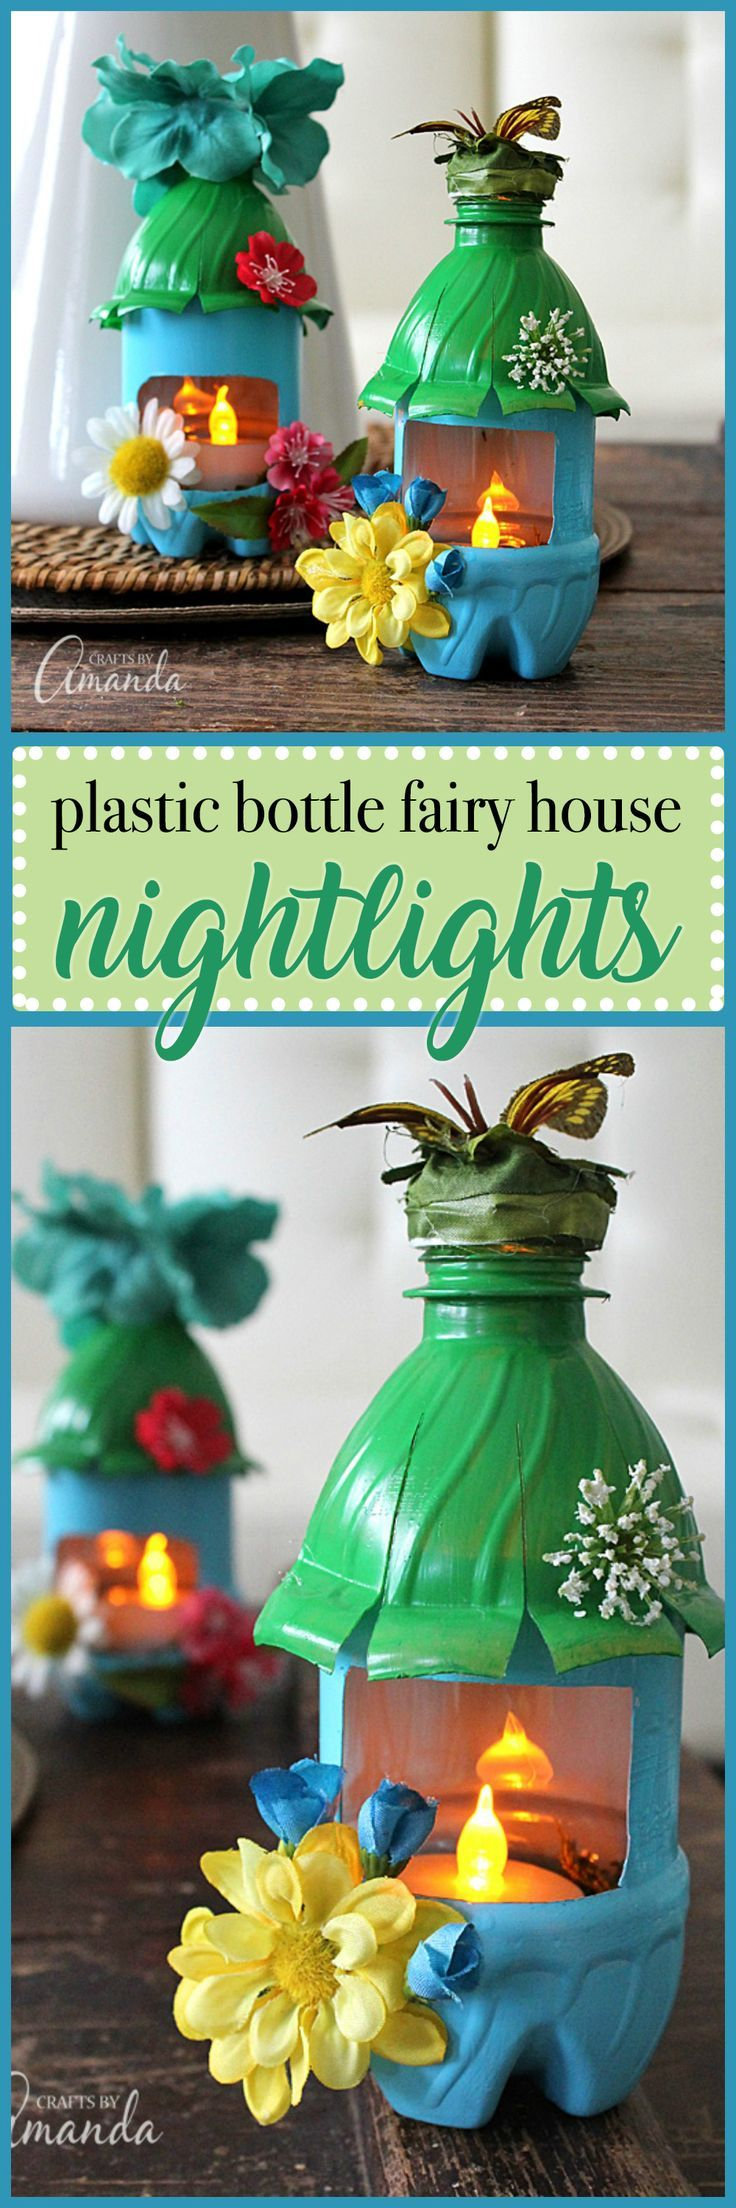 Turn empty plastic water bottles into adorable little fairy house night lights! Fun for a child's room or a nursery, or even the garden. (Diy Gifts For Girls)